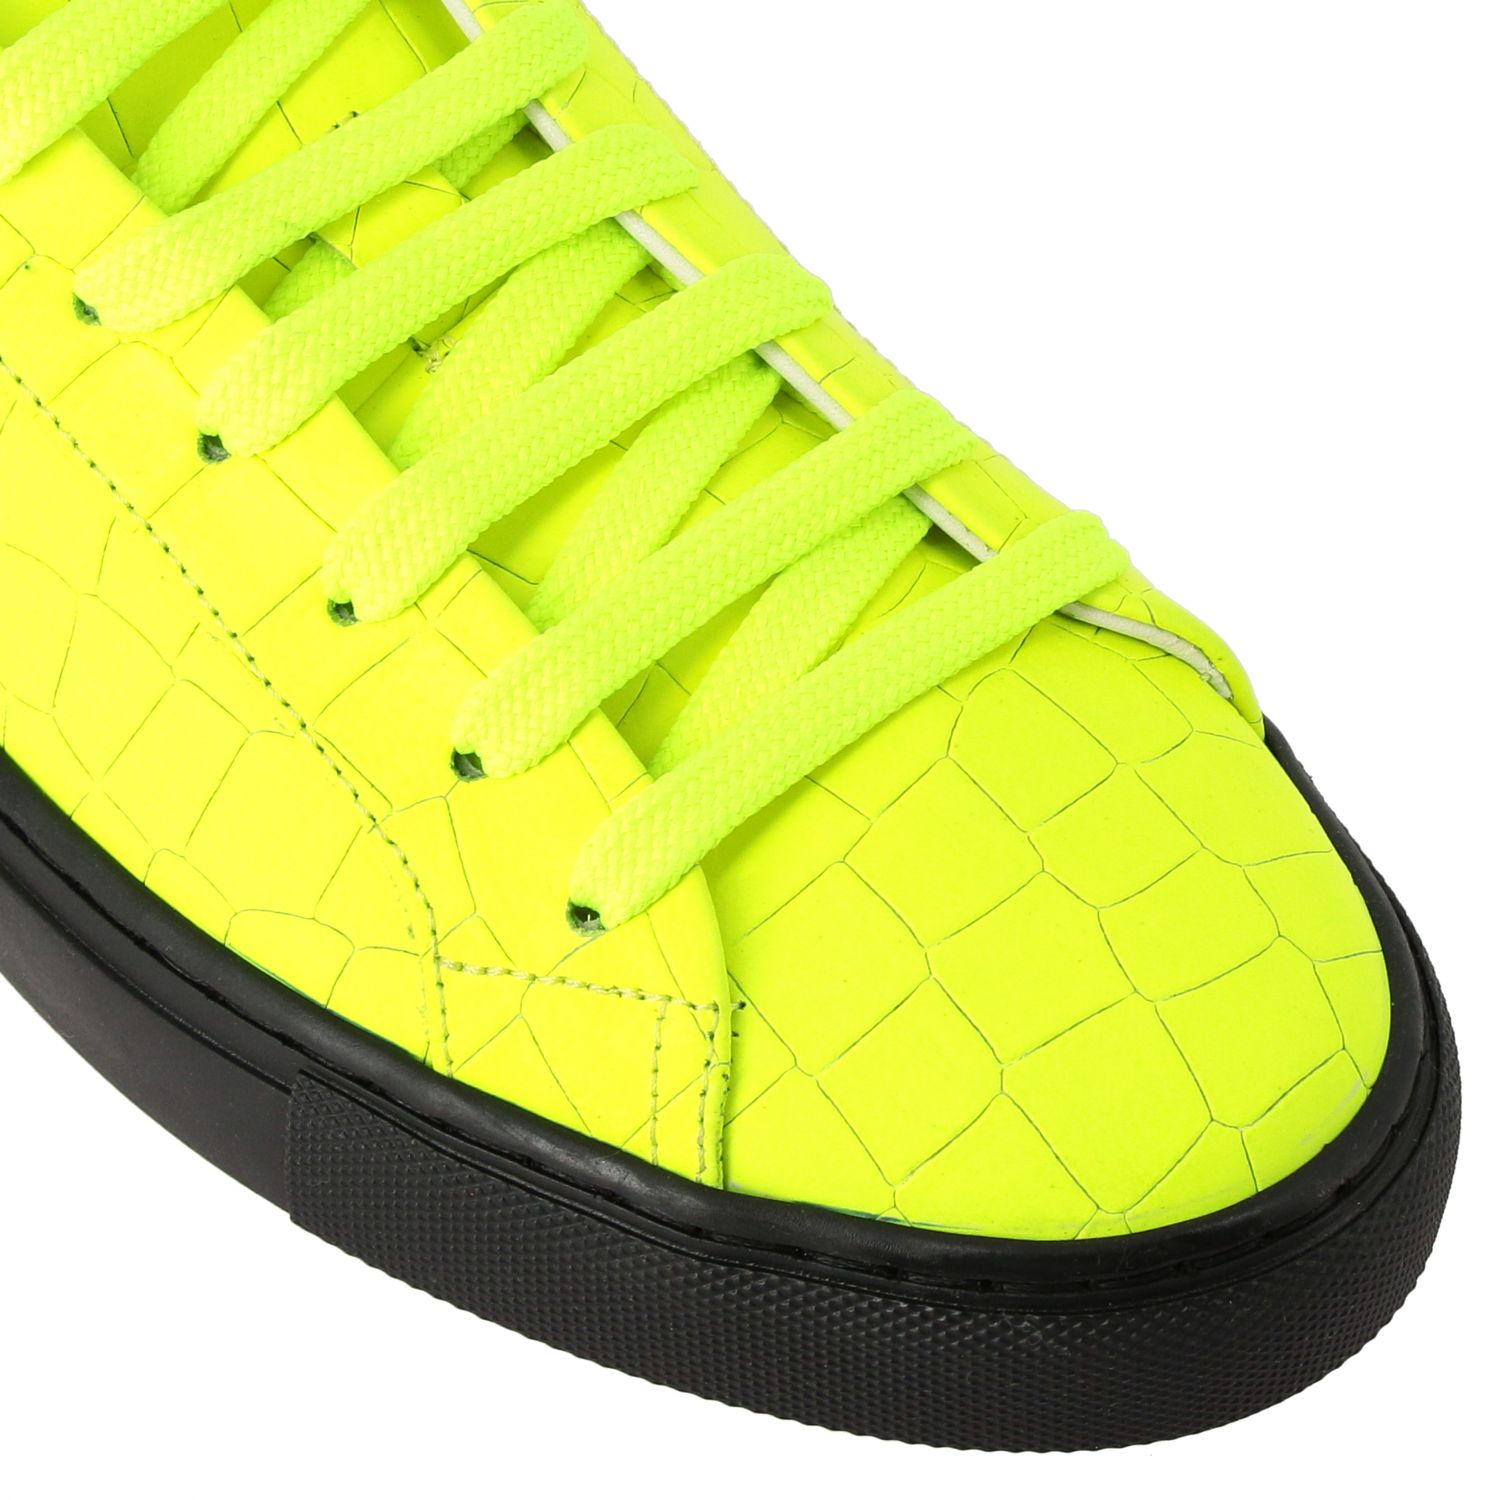 Sneakers pelle stampa cocco fluo giallo 4